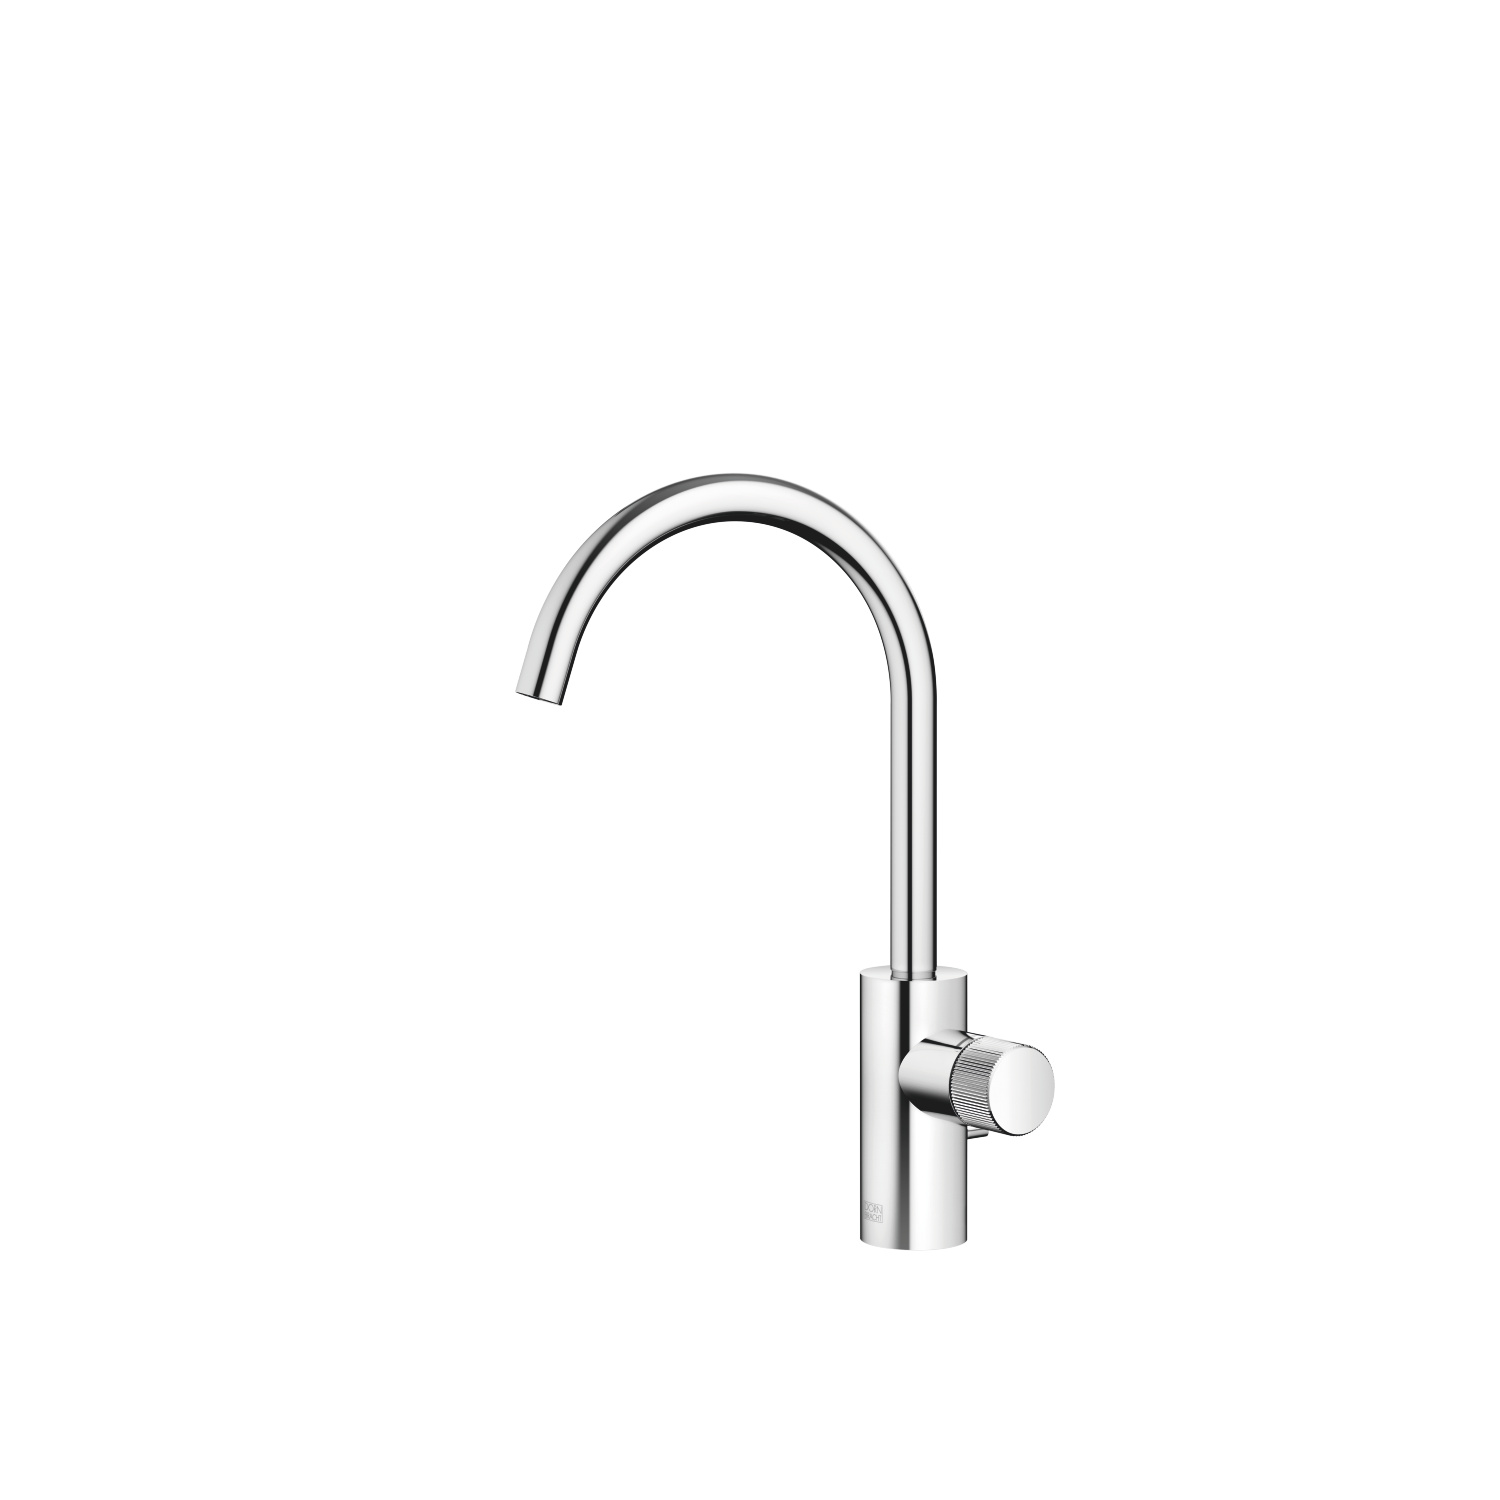 META PURE Single-lever basin mixer with pop-up waste - polished chrome - 33 500 665-00